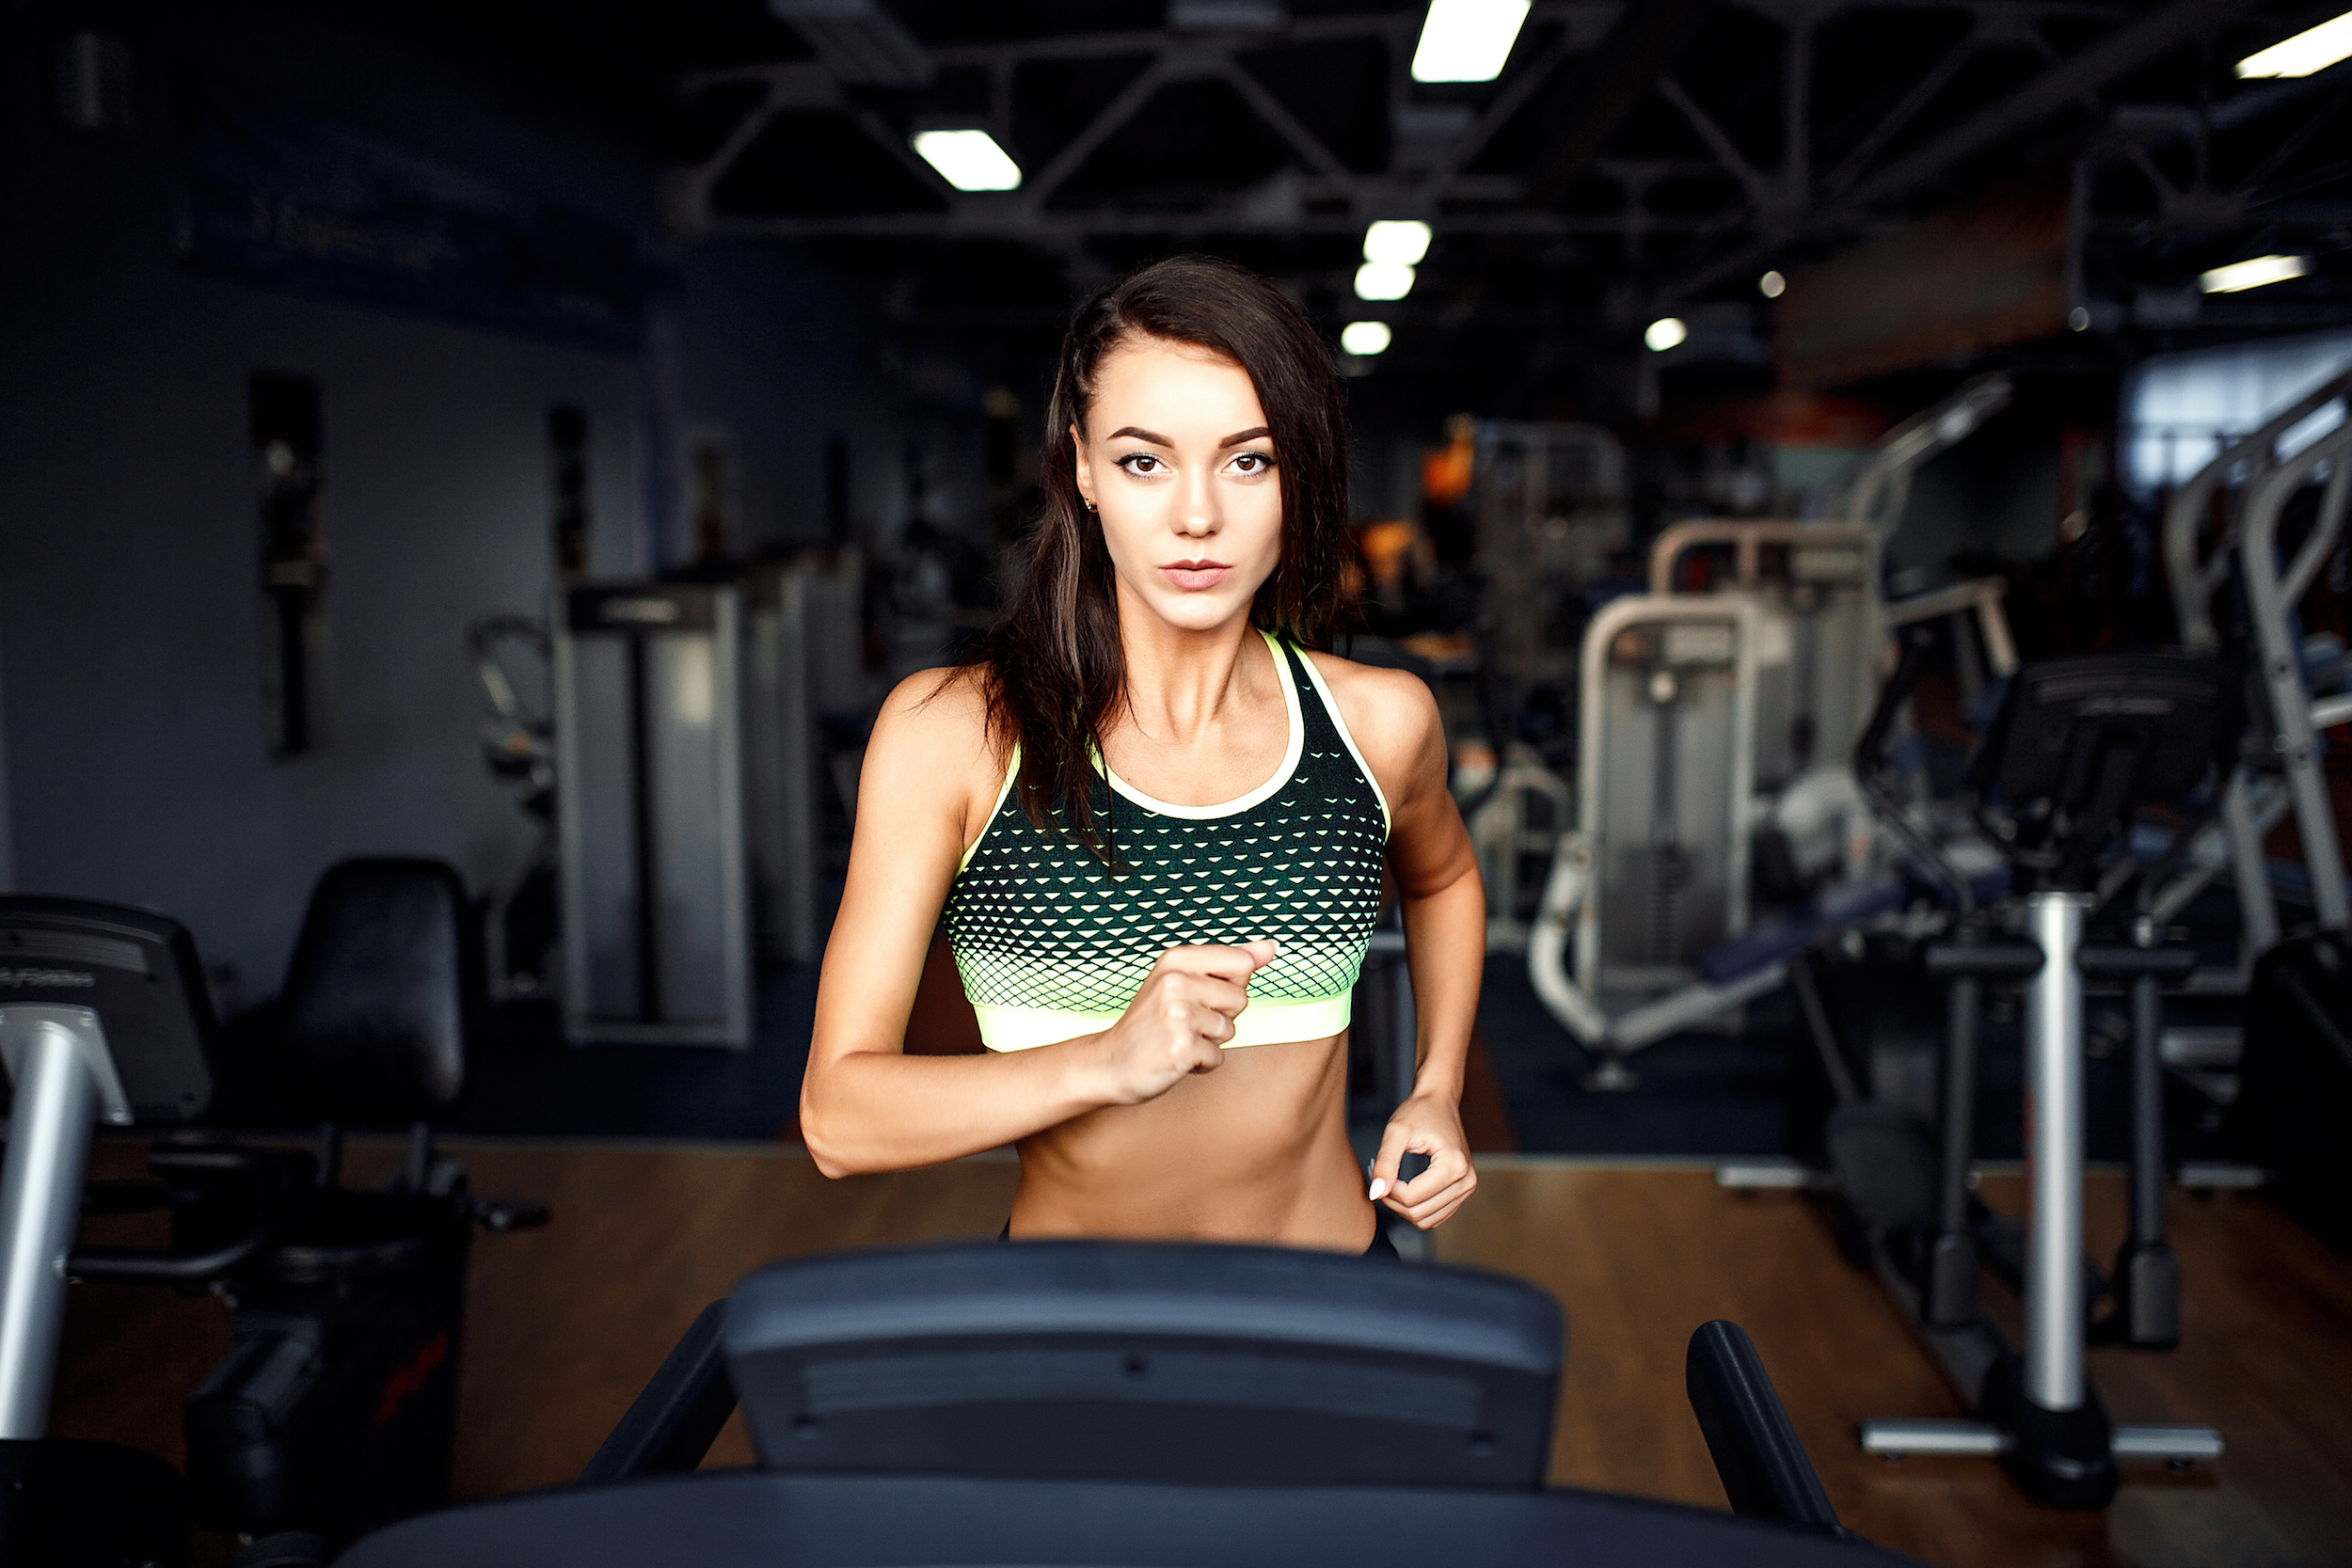 Running on a treadmill is one way to add cardio to your life